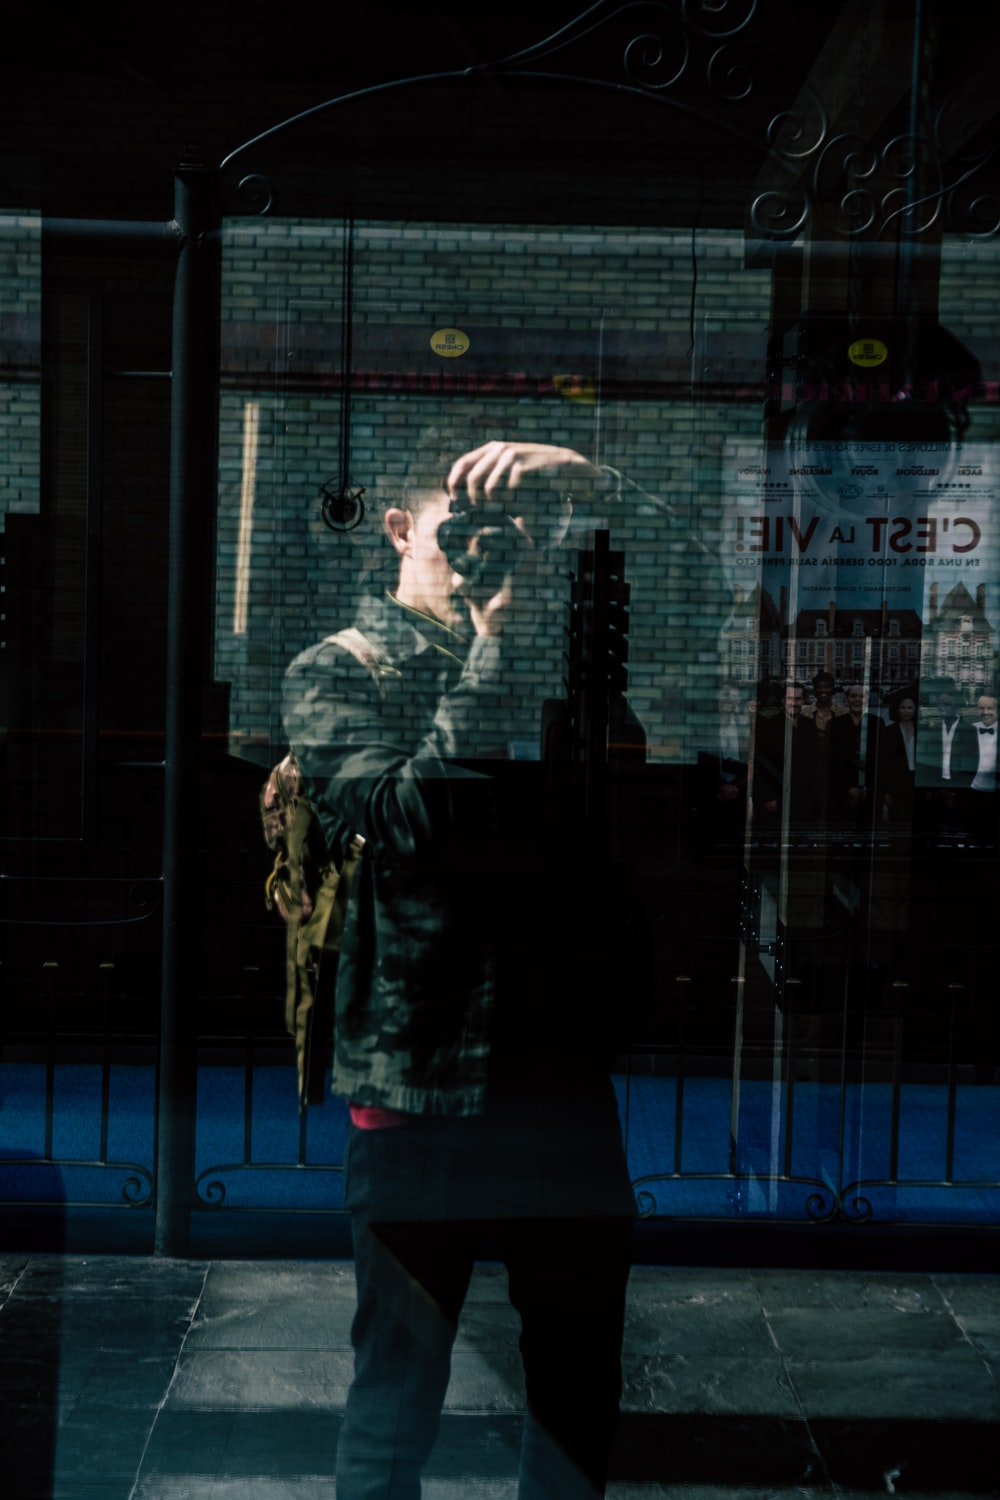 man taking photo himself by reflecting on glass wall